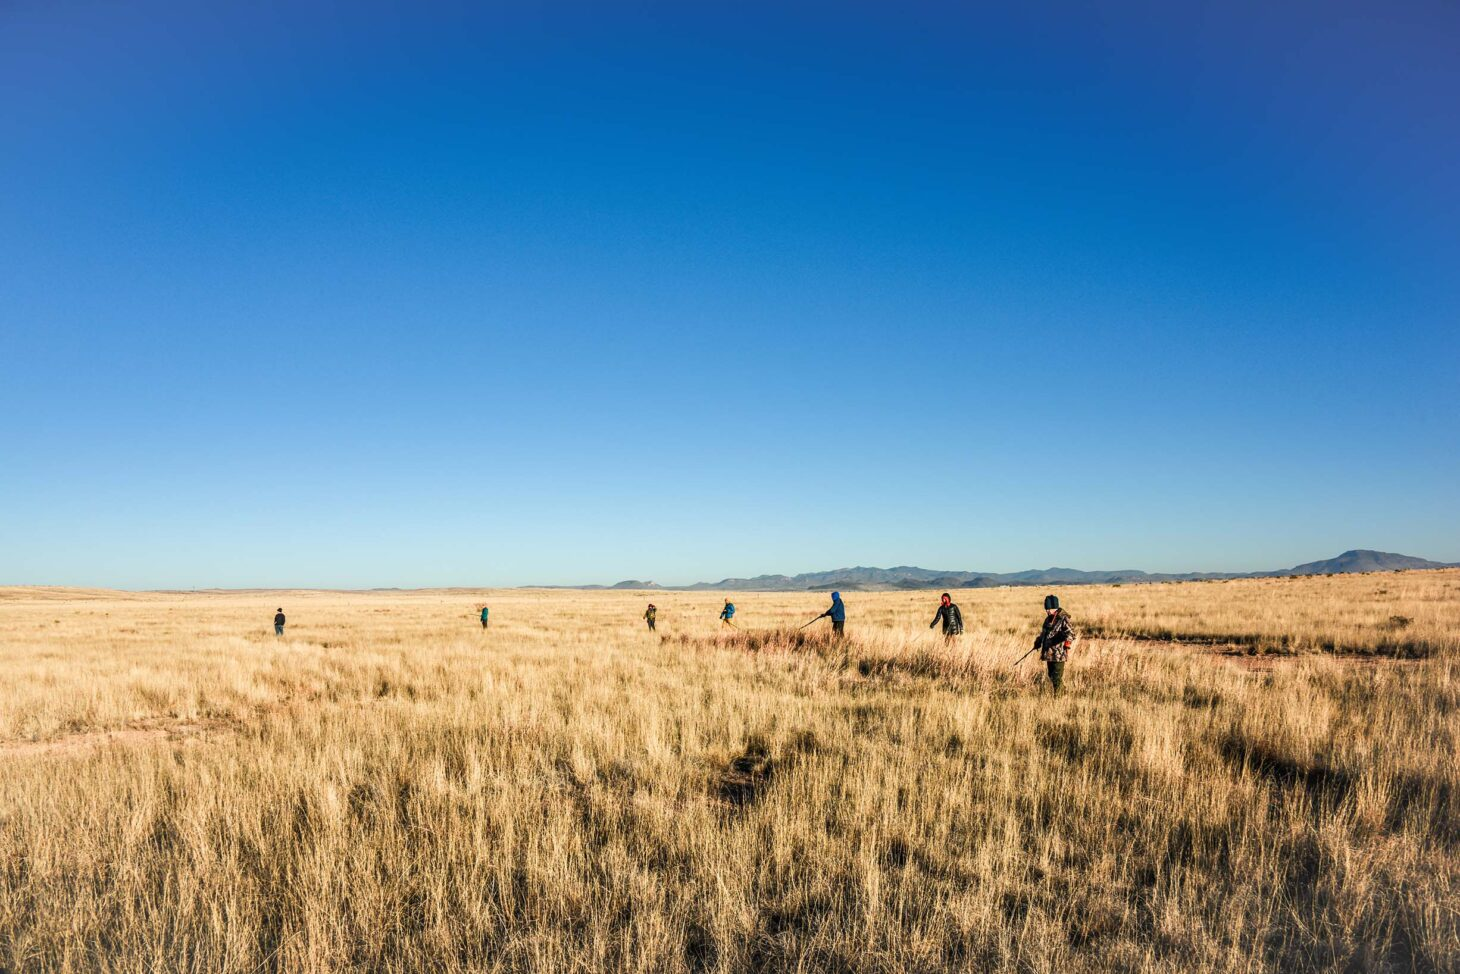 The $180,674 grant will fund brush treatment of approximately 3,500 acres of private land in the Marfa and Marathon grasslands of Texas, which are critical wintering habitat for migratory grassland bird species such as Baird's sparrow, Sprague's pipit, chestnut-collared longspur and McCown's longspur. |  Photo courtesy BRI